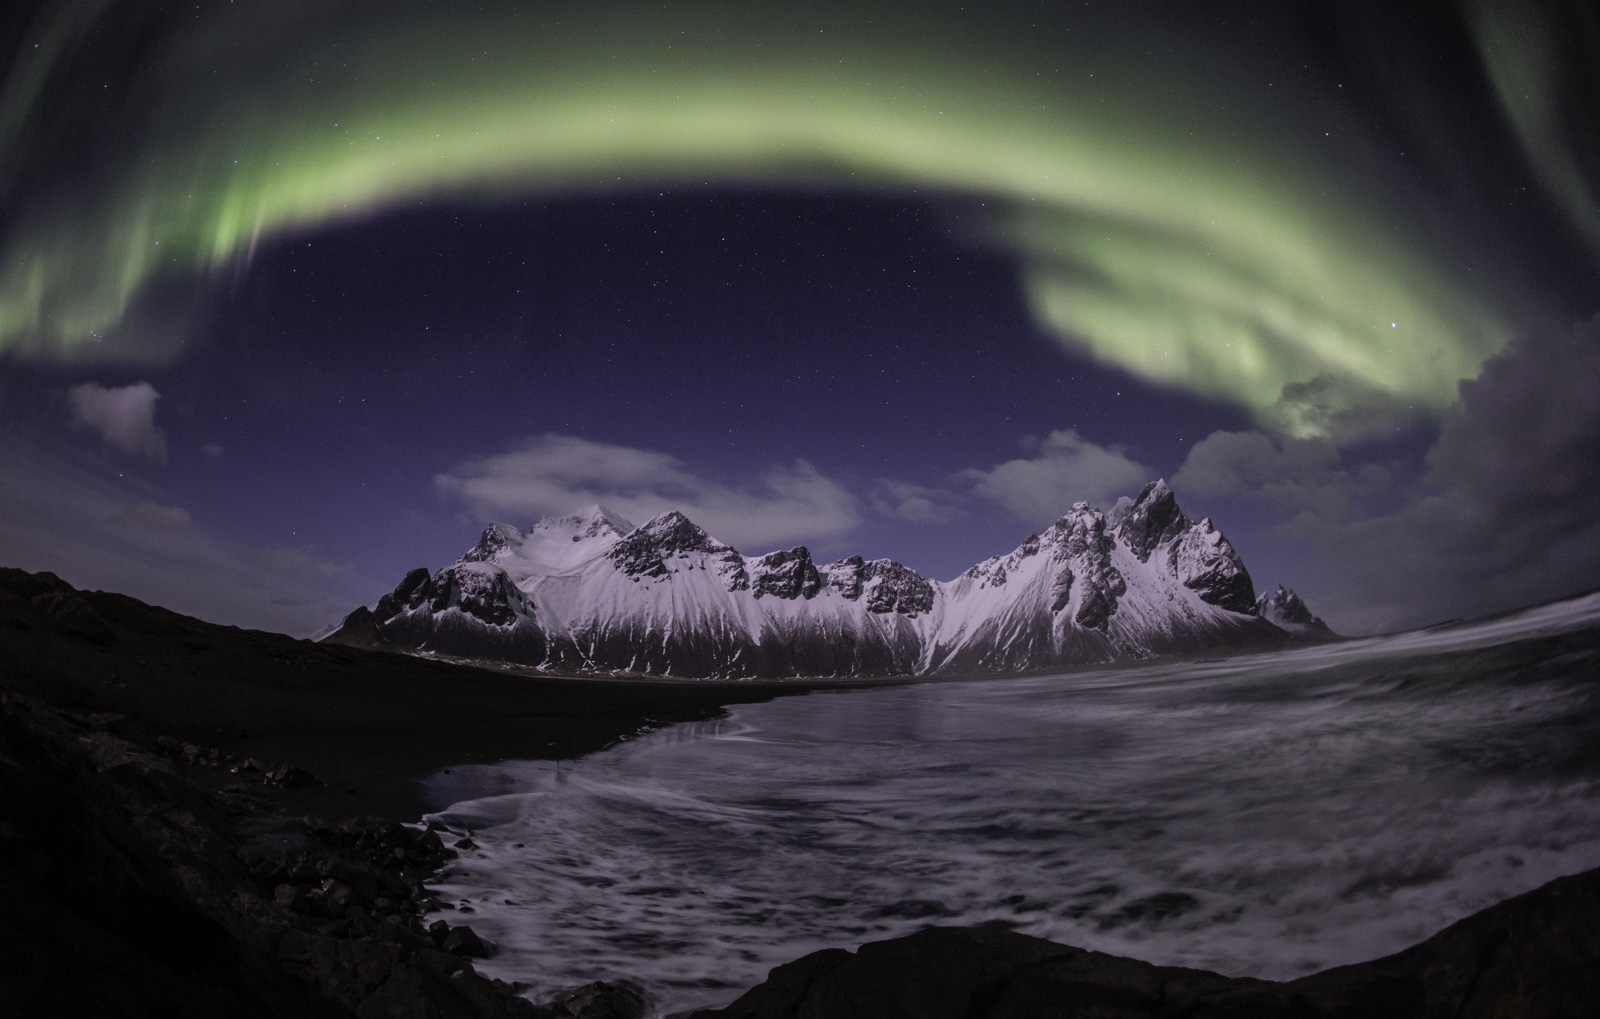 Northern lights in Iceland over mountains